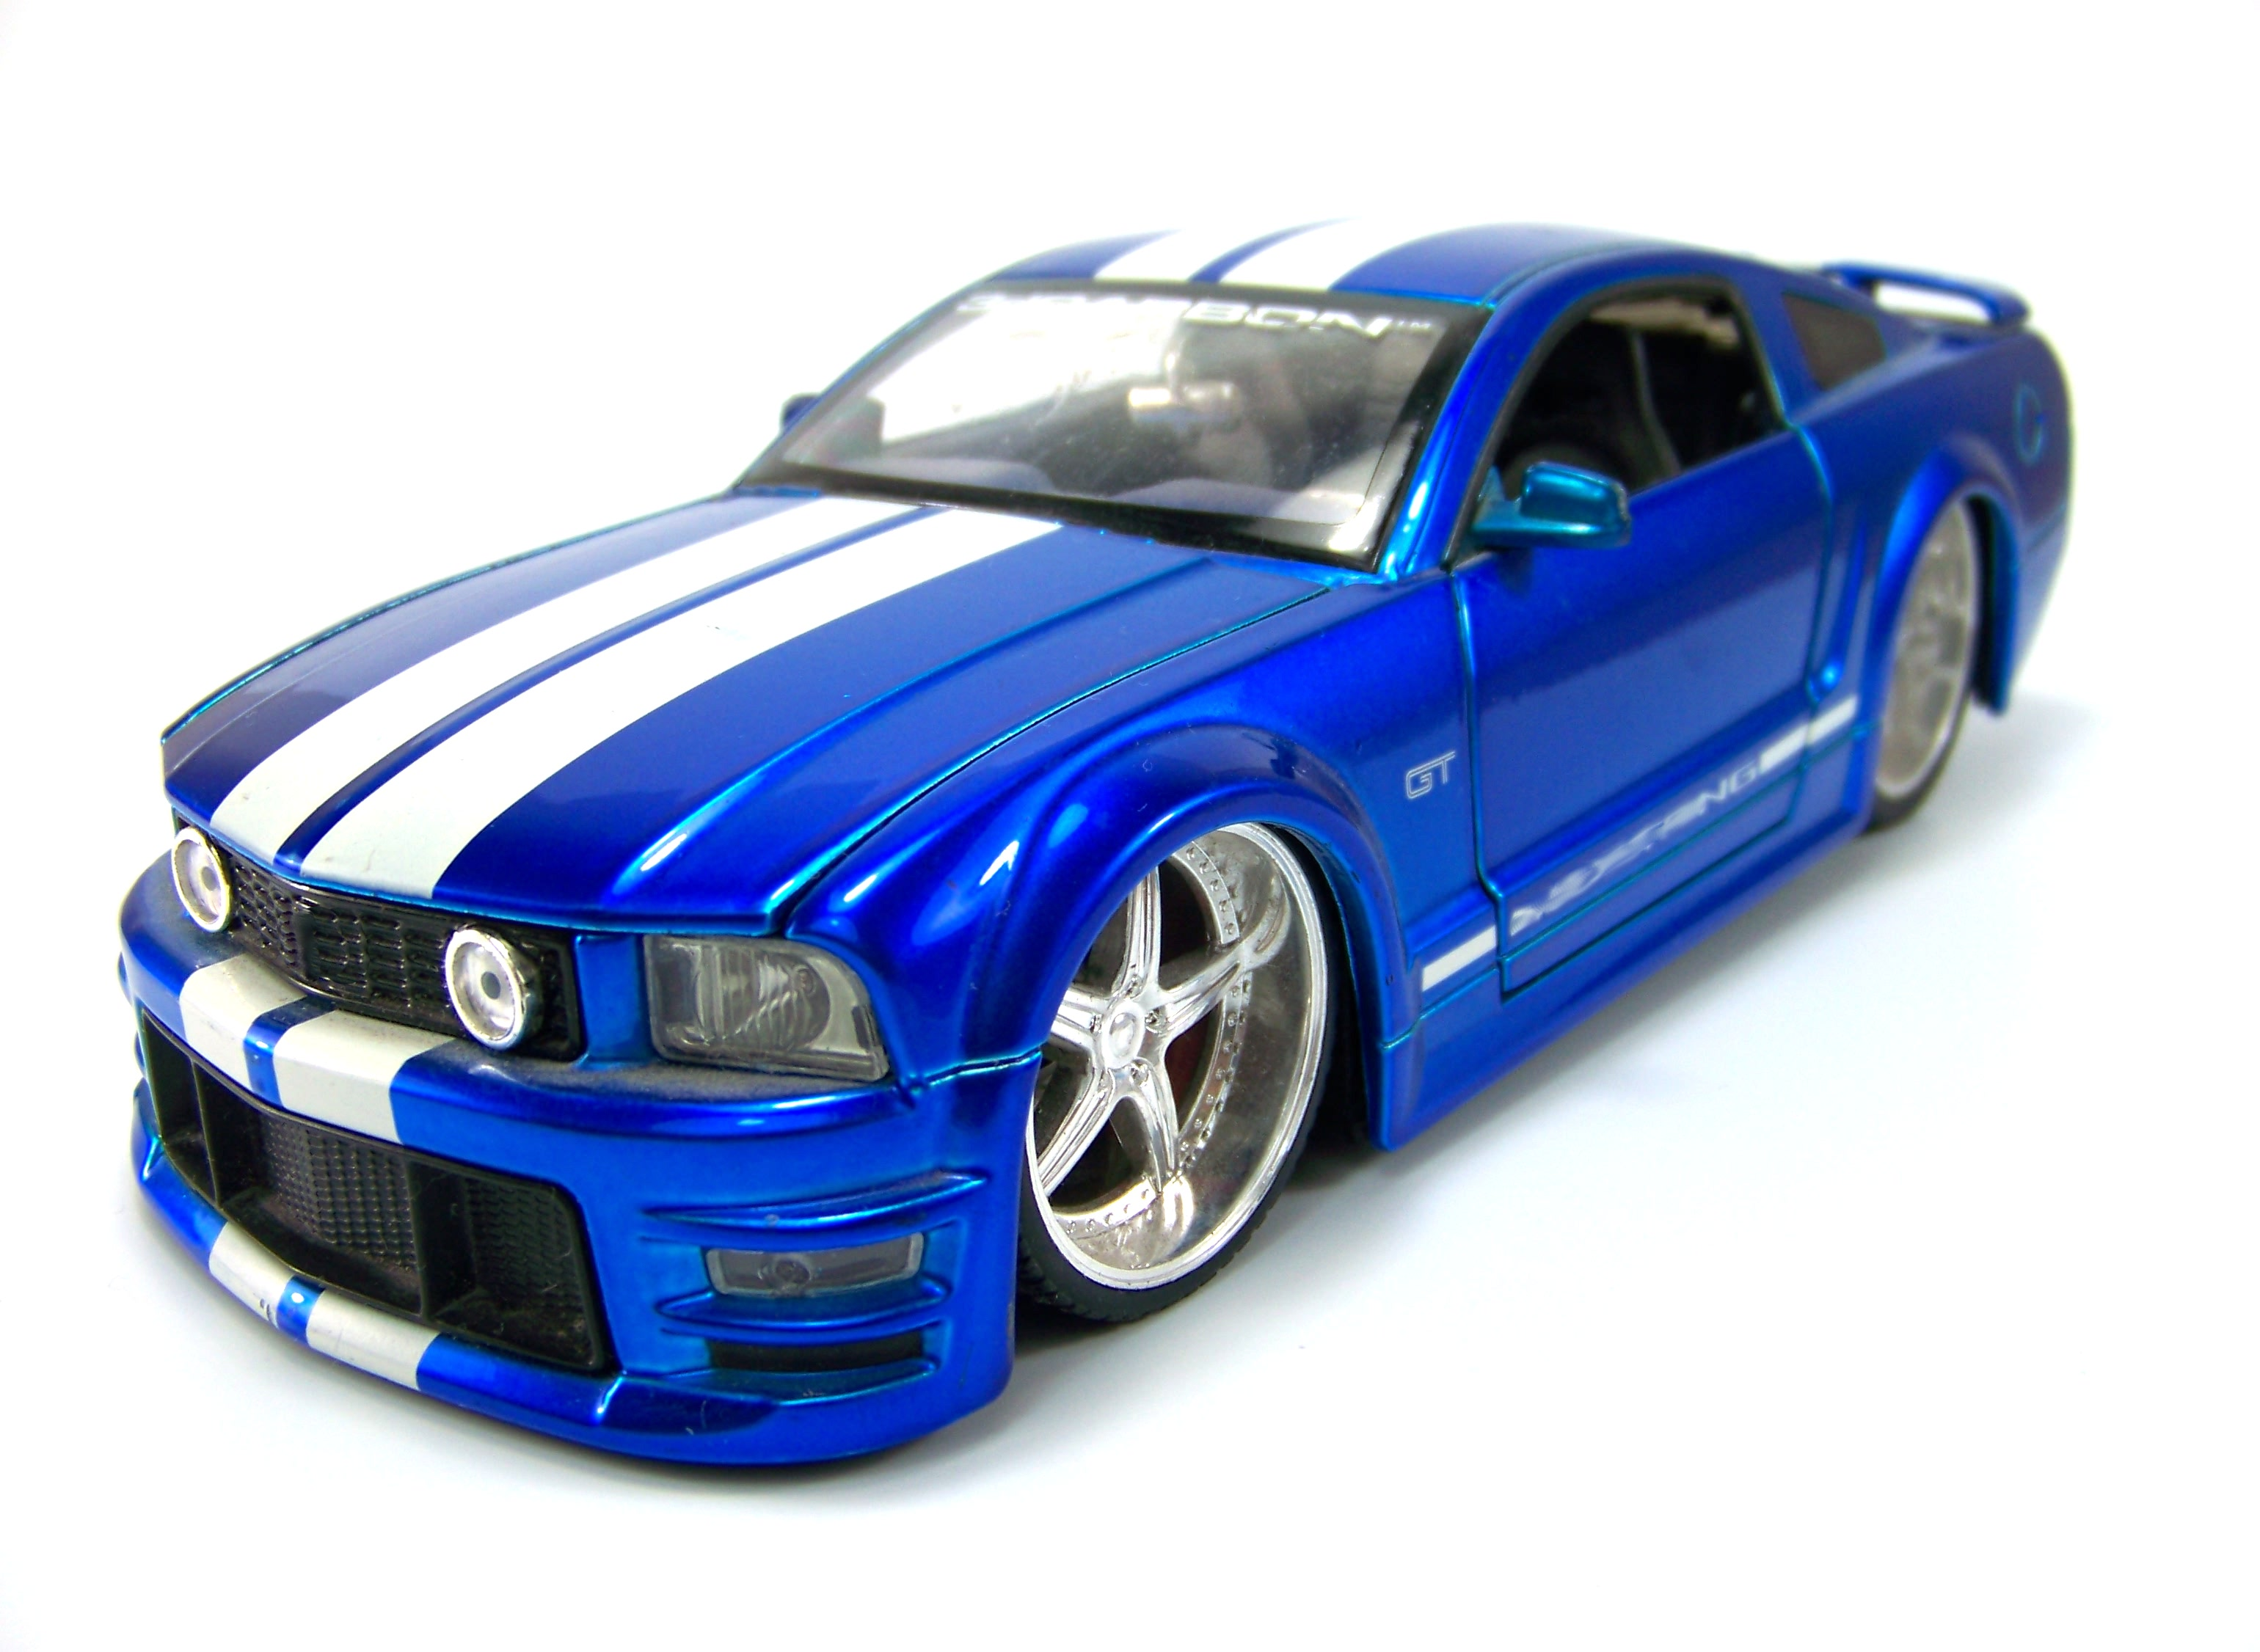 Toy car, America, Speed, Player, Power, HQ Photo